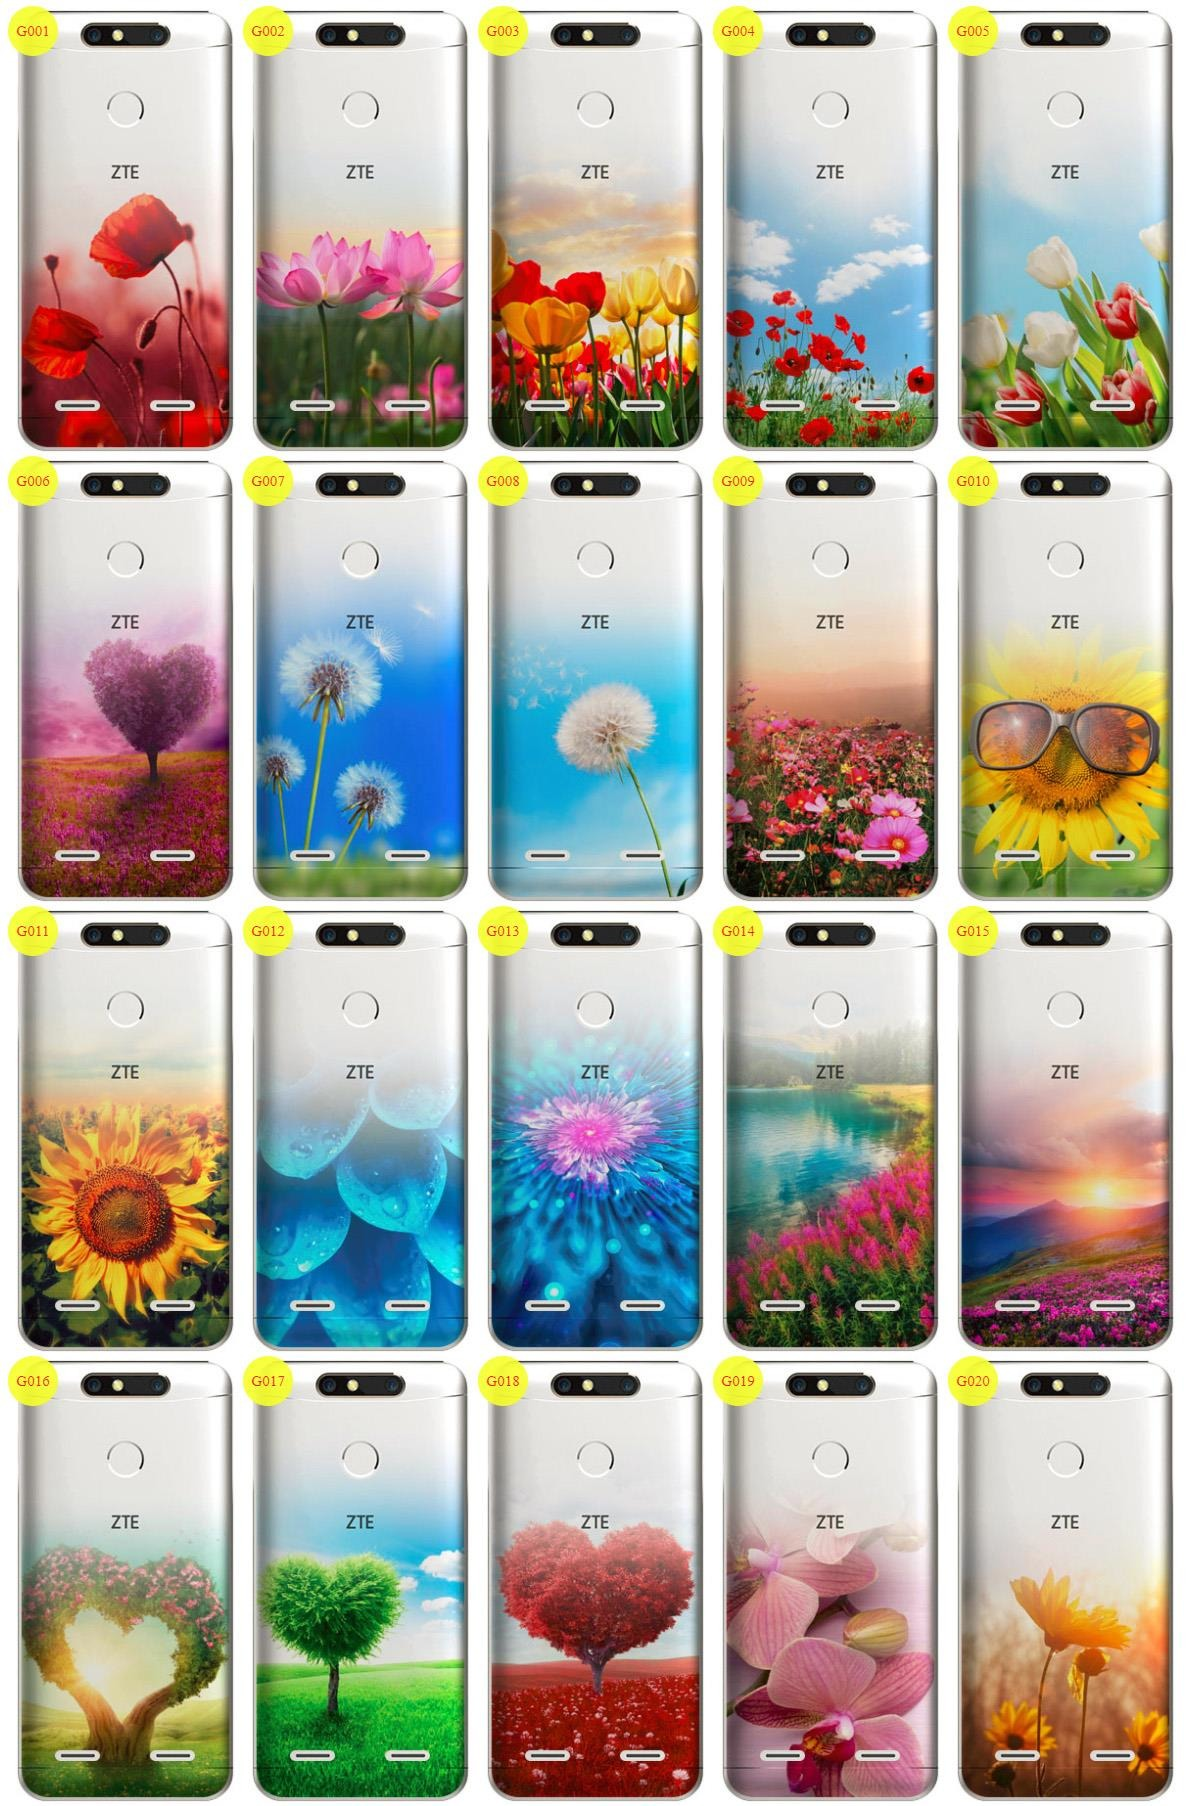 super popular 6eb10 4d490 Case Cover Overprint Kreatui GRADIENT ZTE BLADE V8 MINI